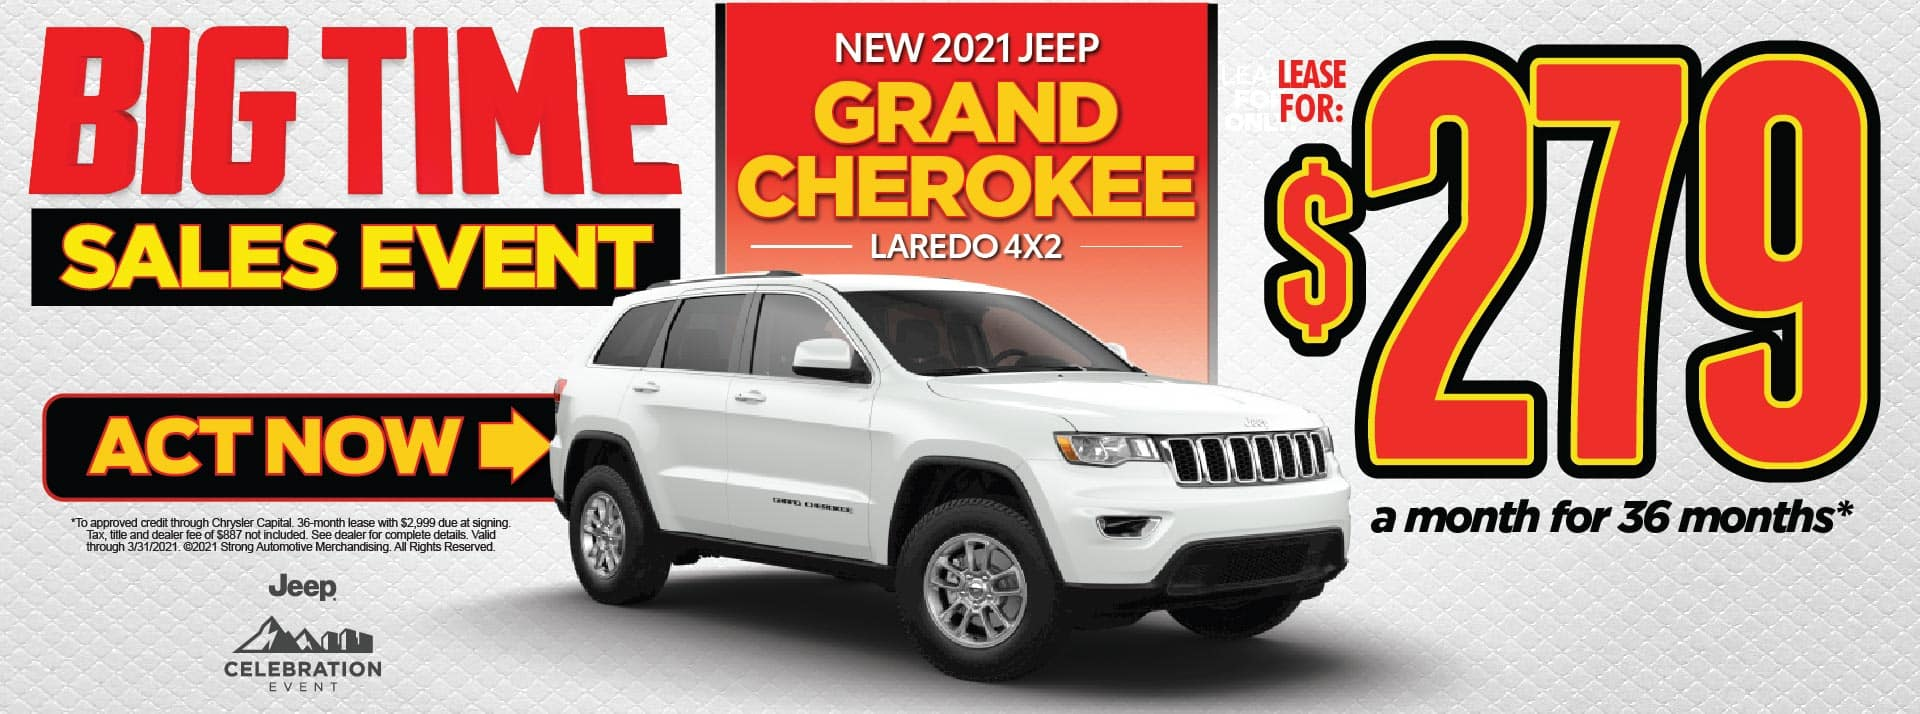 NEW 2021 JEEP GRAND CHEROKEE LEASE FOR $279/MO* ACT NOW